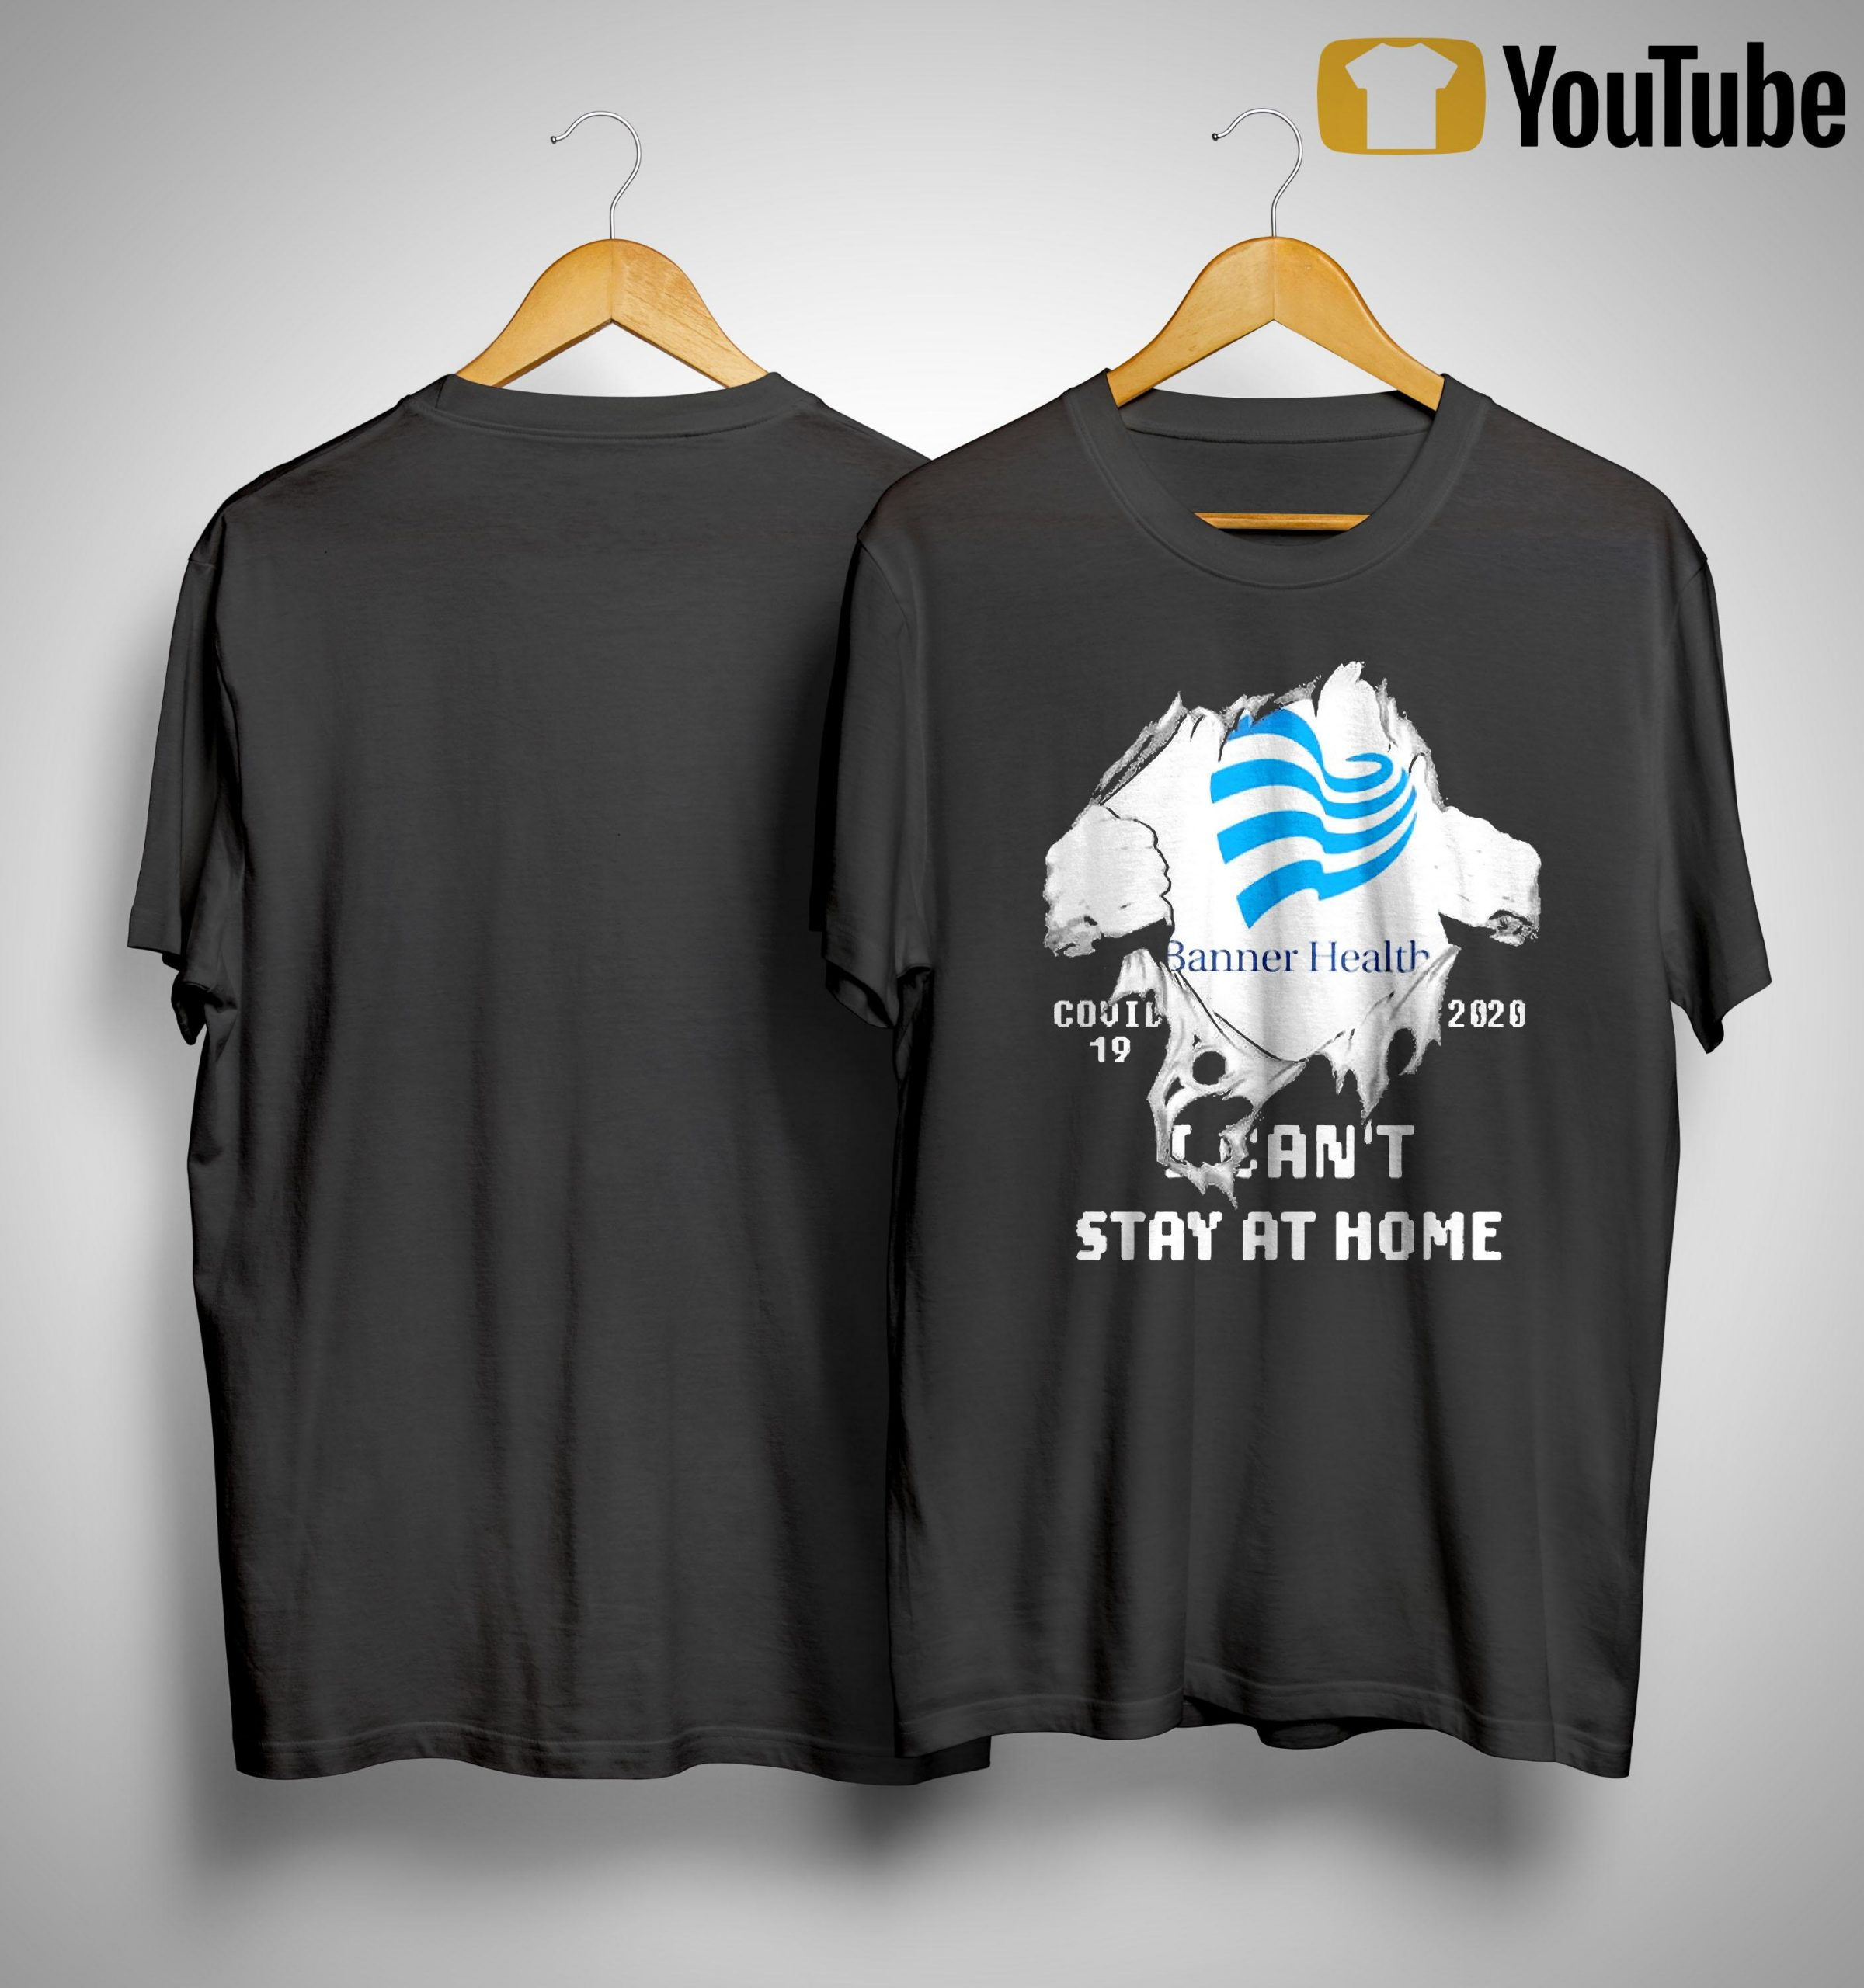 Inside Me Banner Health Covid 19 2020 I Can't Stay At Home Shirt